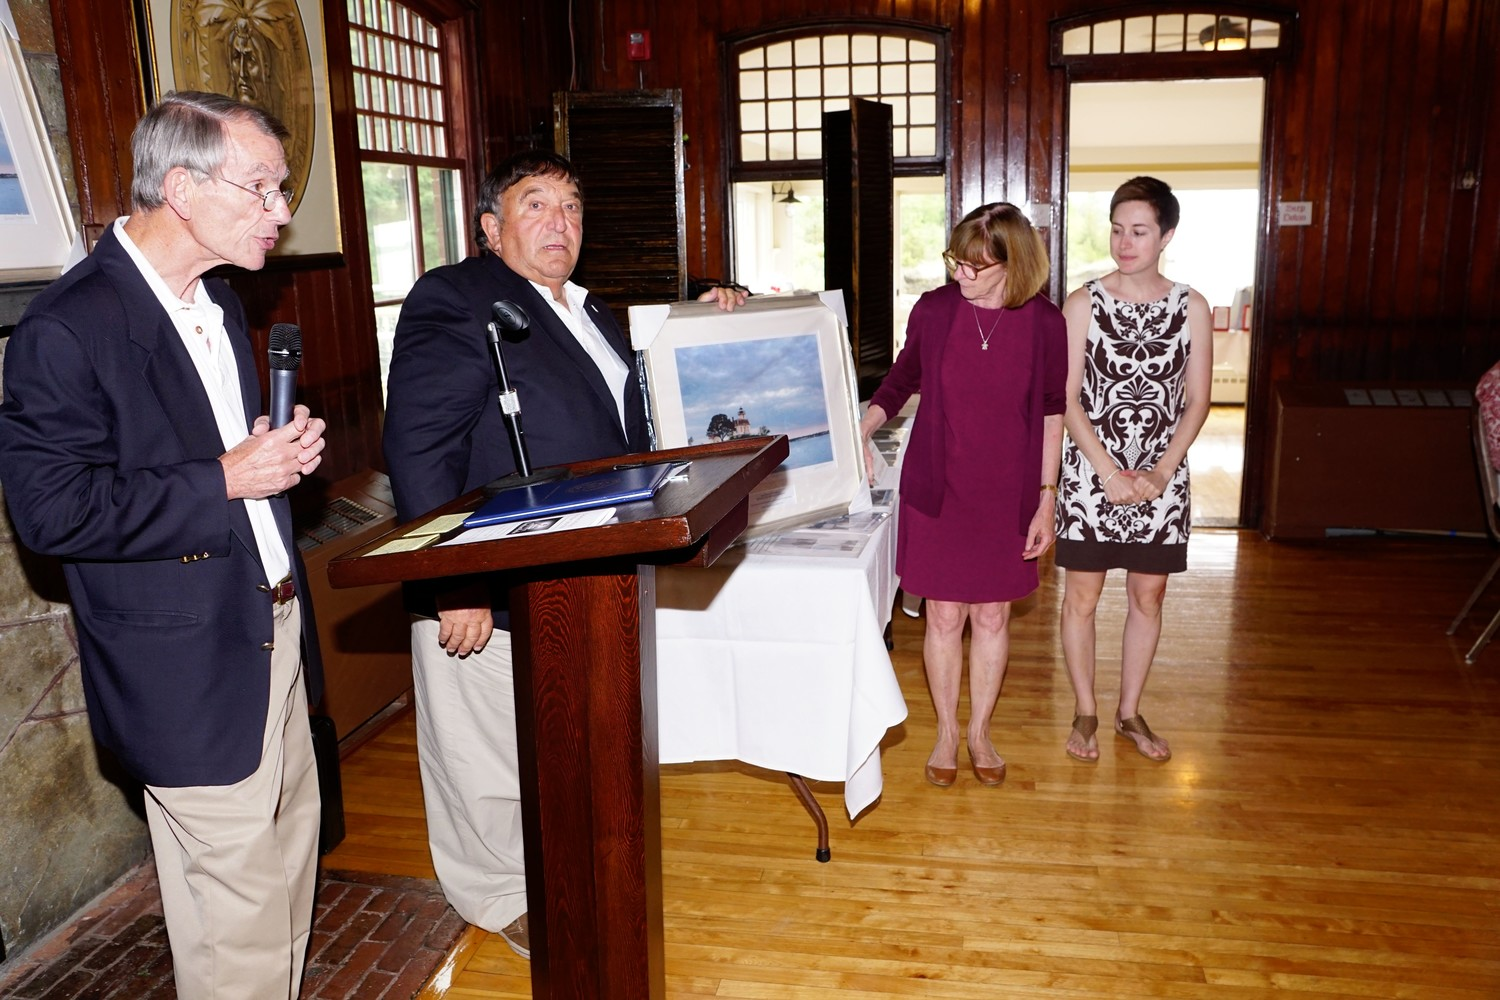 Nate Chace, Director of Development, and Joseph Estrella, Chair of Friends of Pomham Rocks Lighthouse, present a framed print of the Lighthouse to Roberta Randall and Katy Pomplun of Rhode Island Historical Preservation and Heritage Commission.